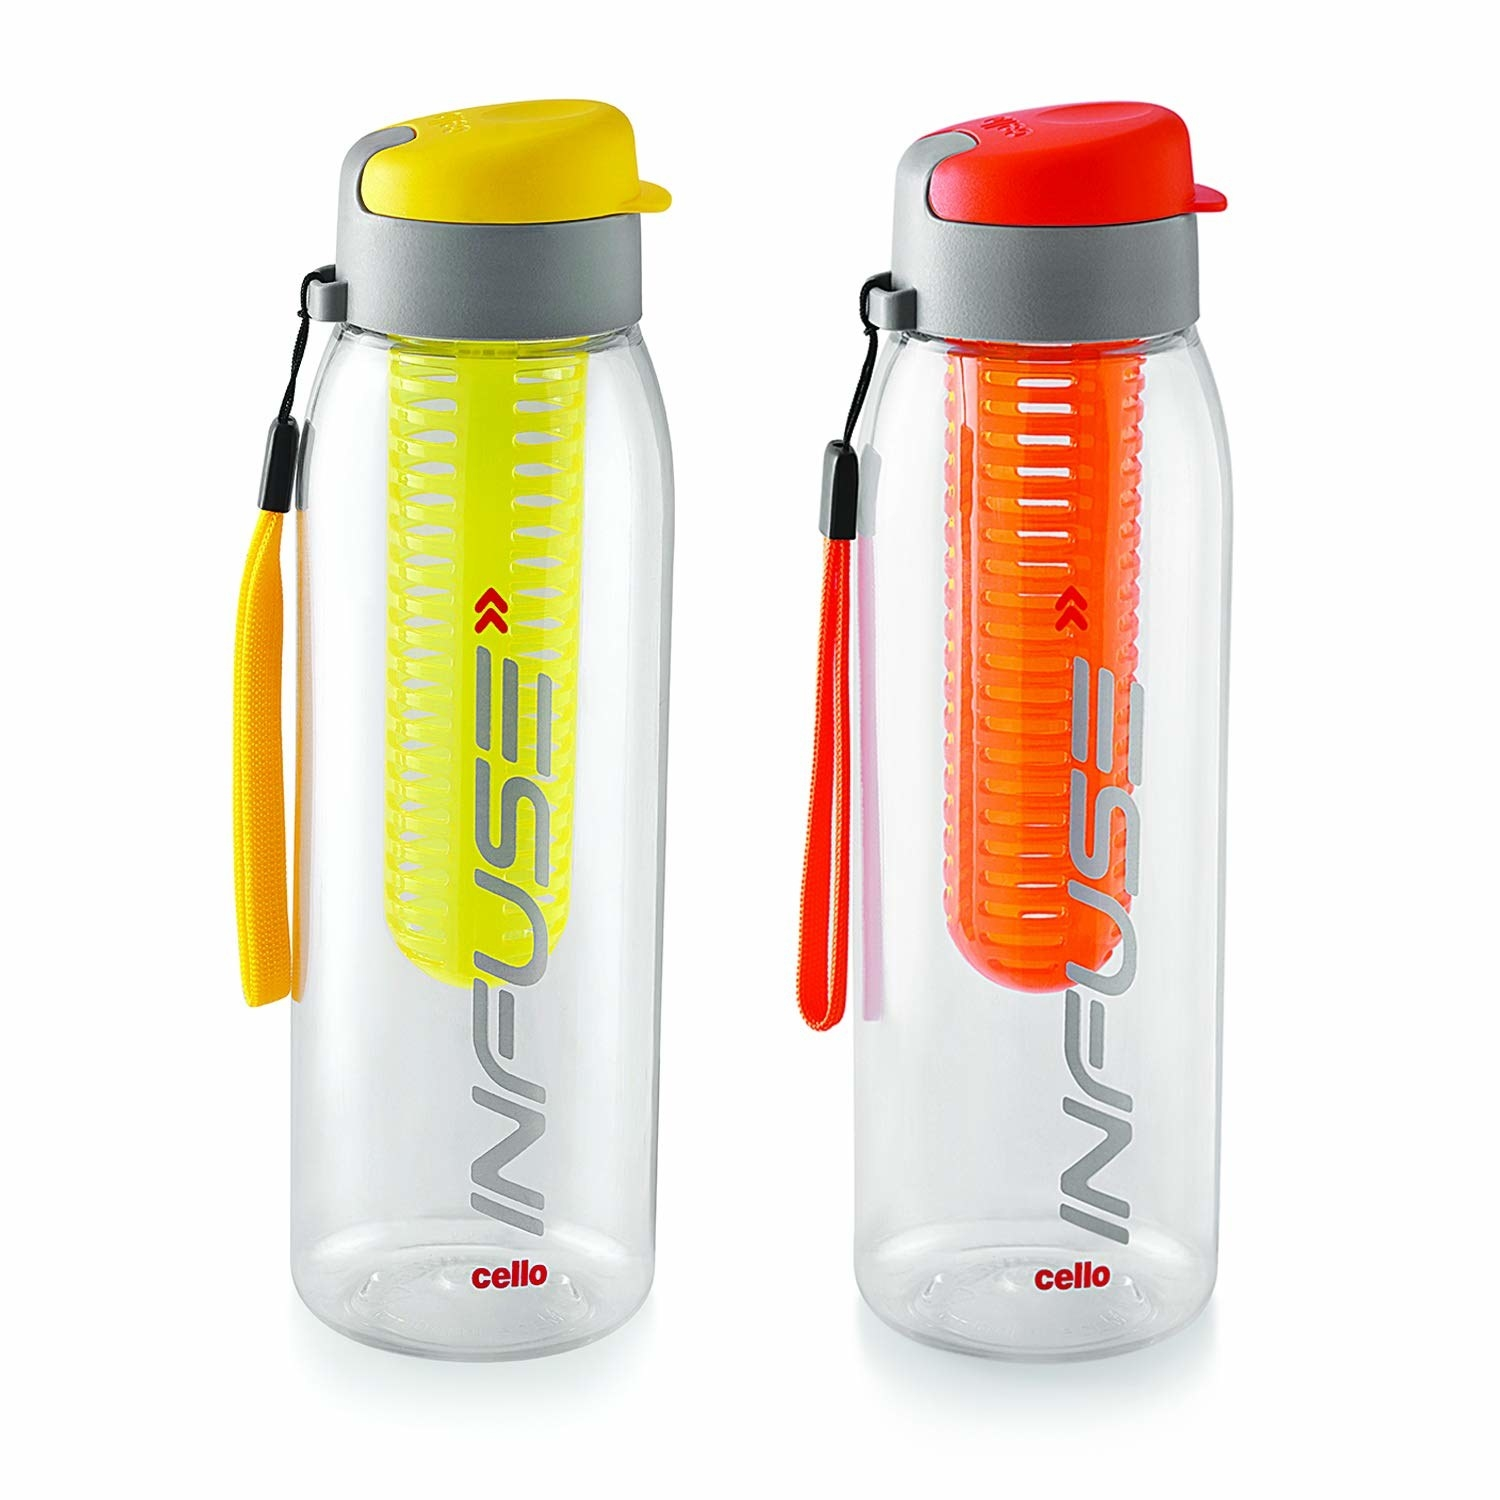 Two infuser bottles